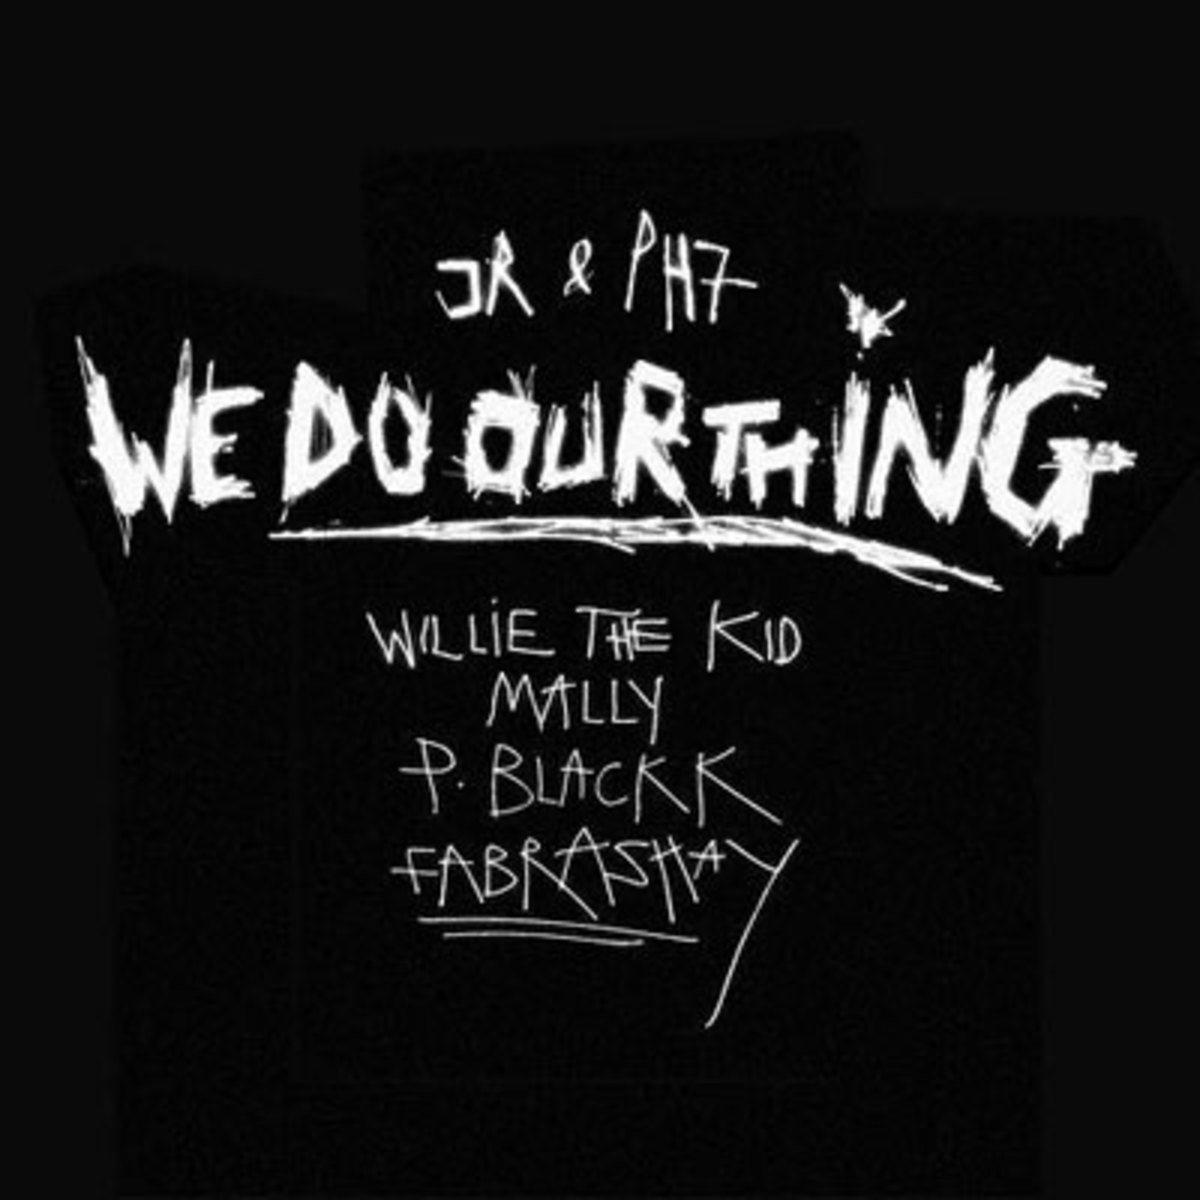 jr-ph7-we-do-our-thing.jpg